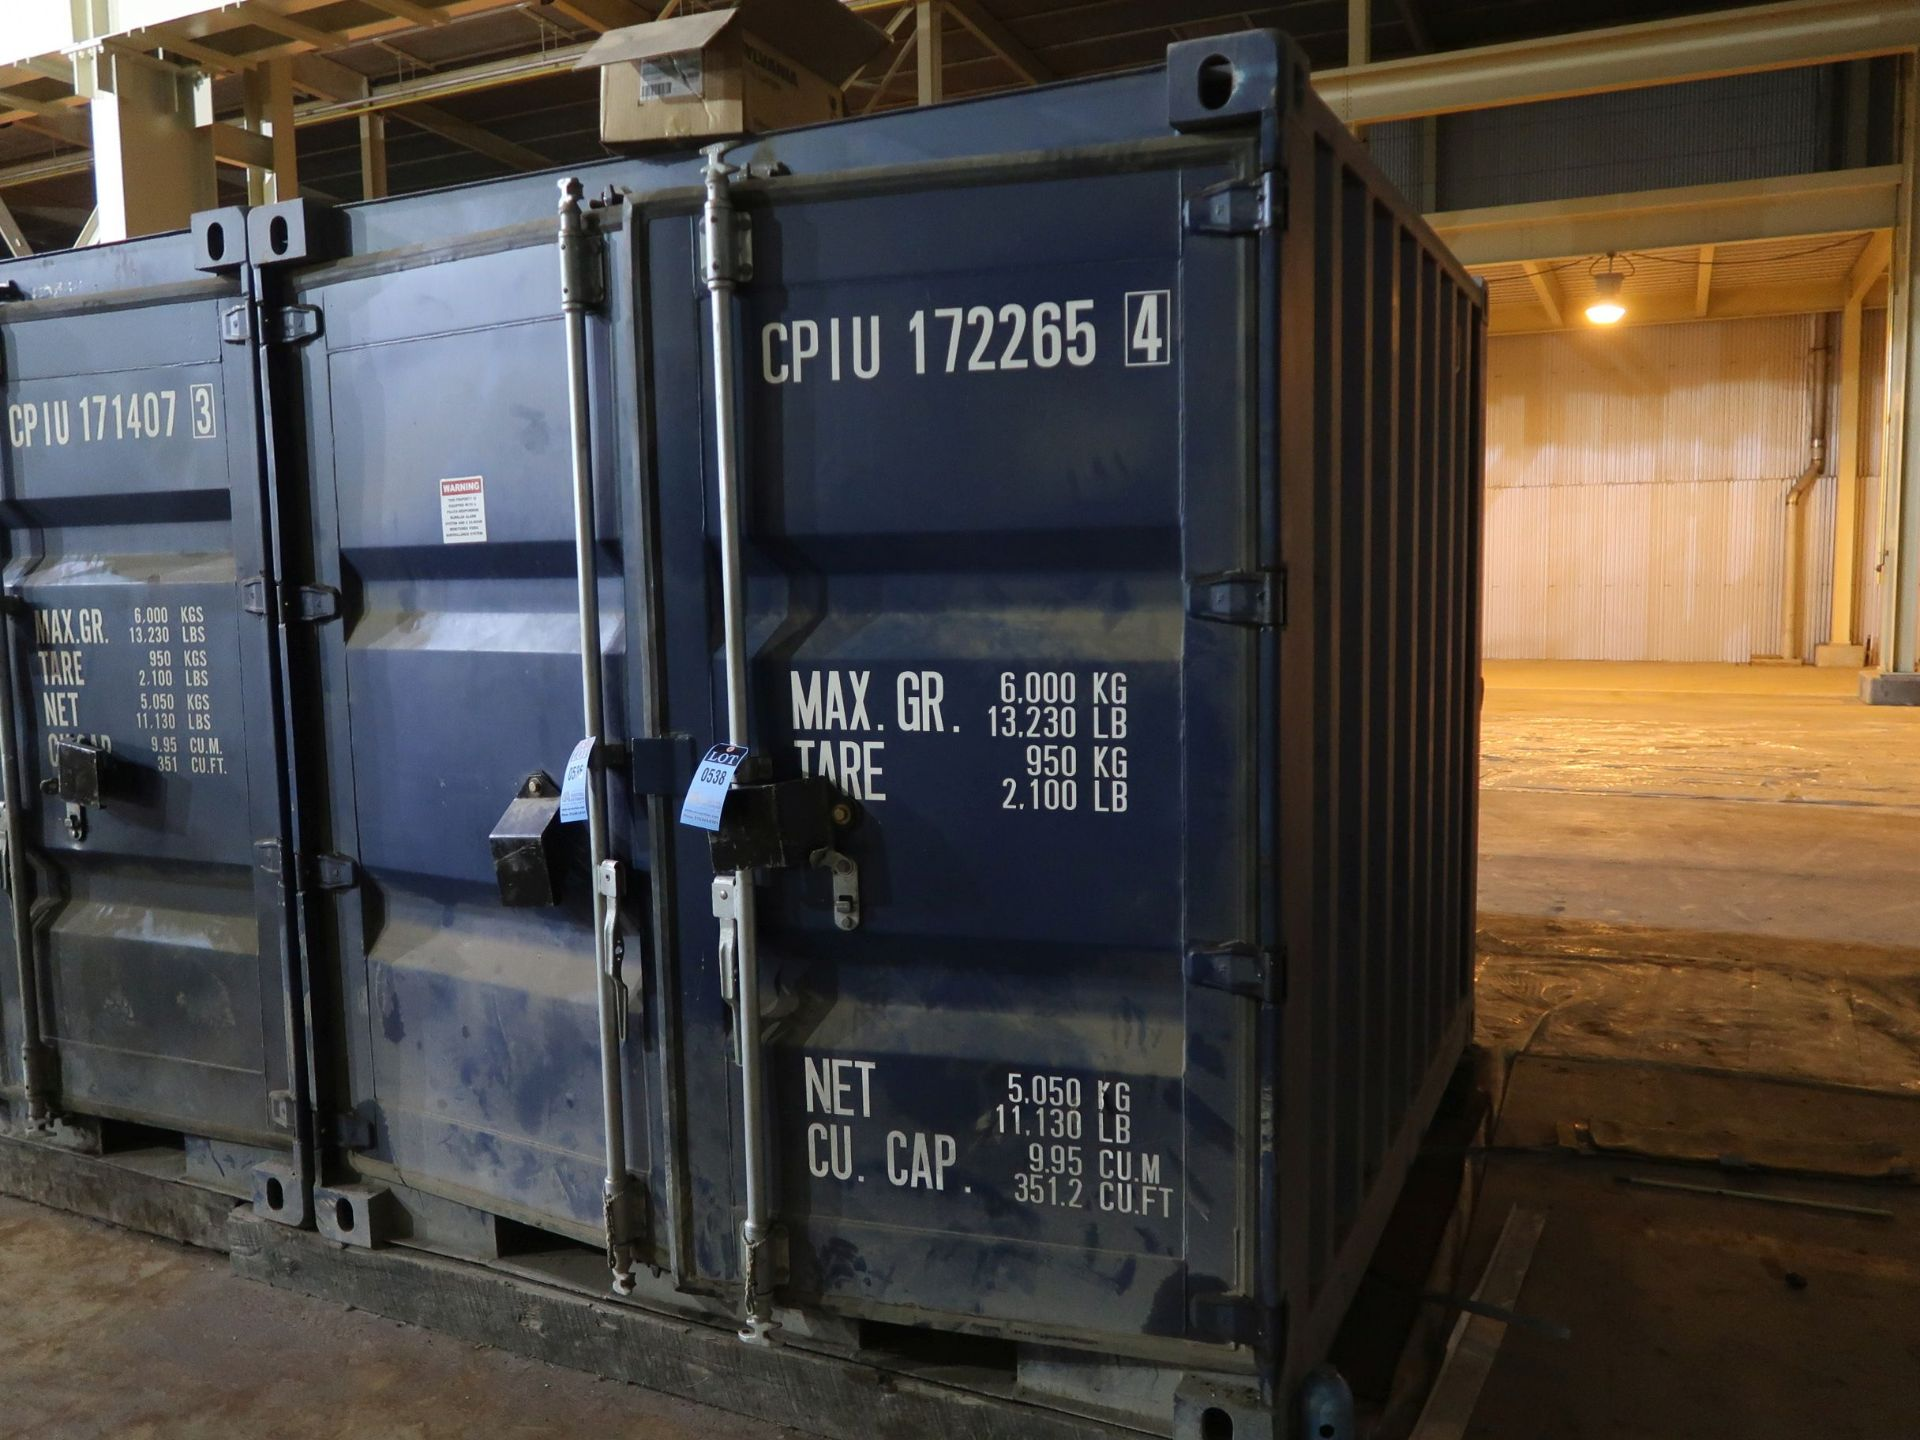 Lot 538 - 7' WIDE X 8' LONG CONEX STORAGE CONTAINER, 351 CUBIC FEET WITH STANDARD DOOR